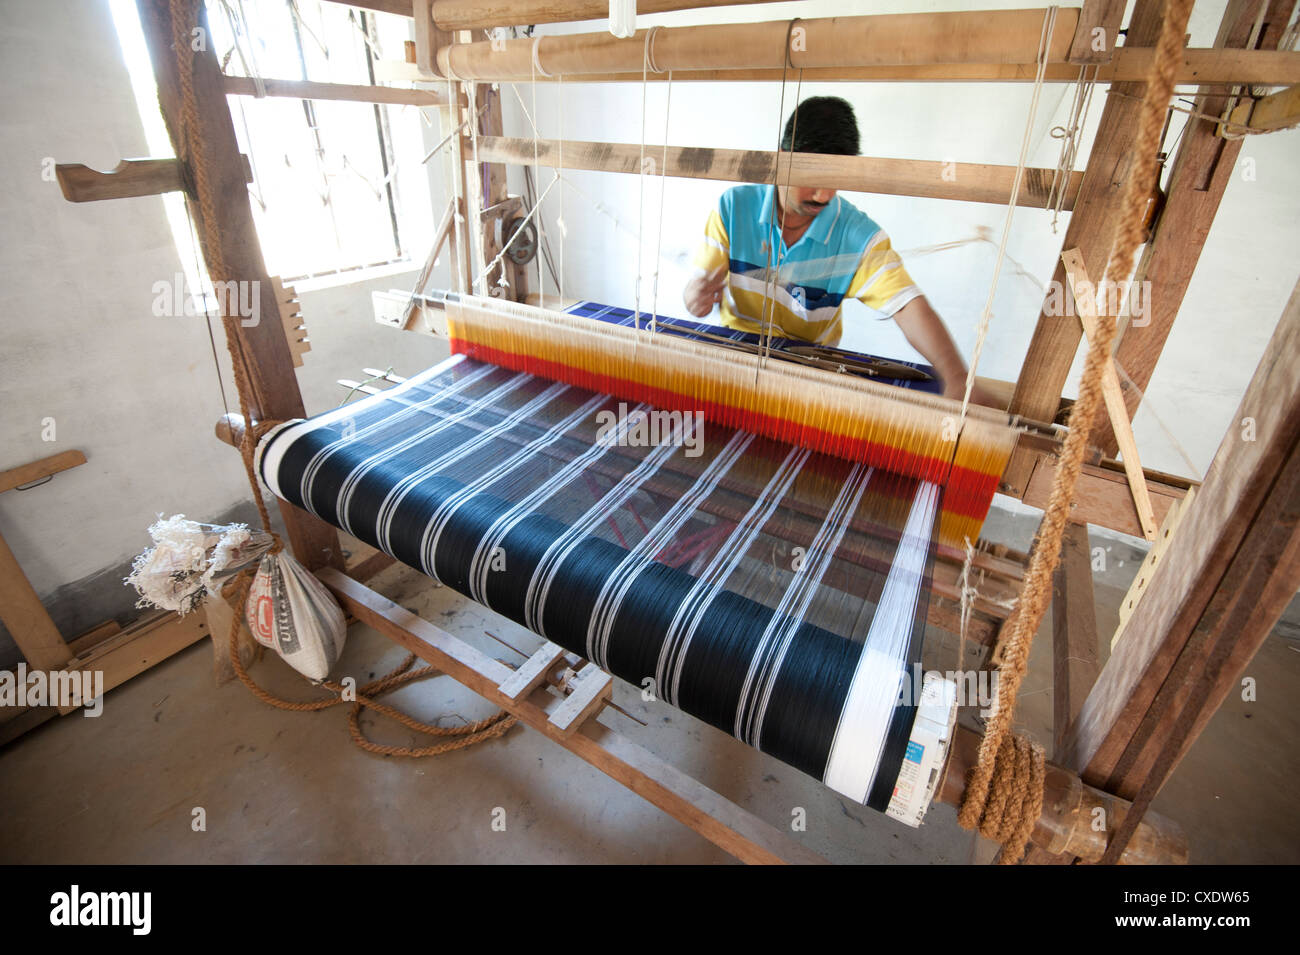 Man weaving coloured silk sari on domestic loom, rural Orissa, India, Asia - Stock Image